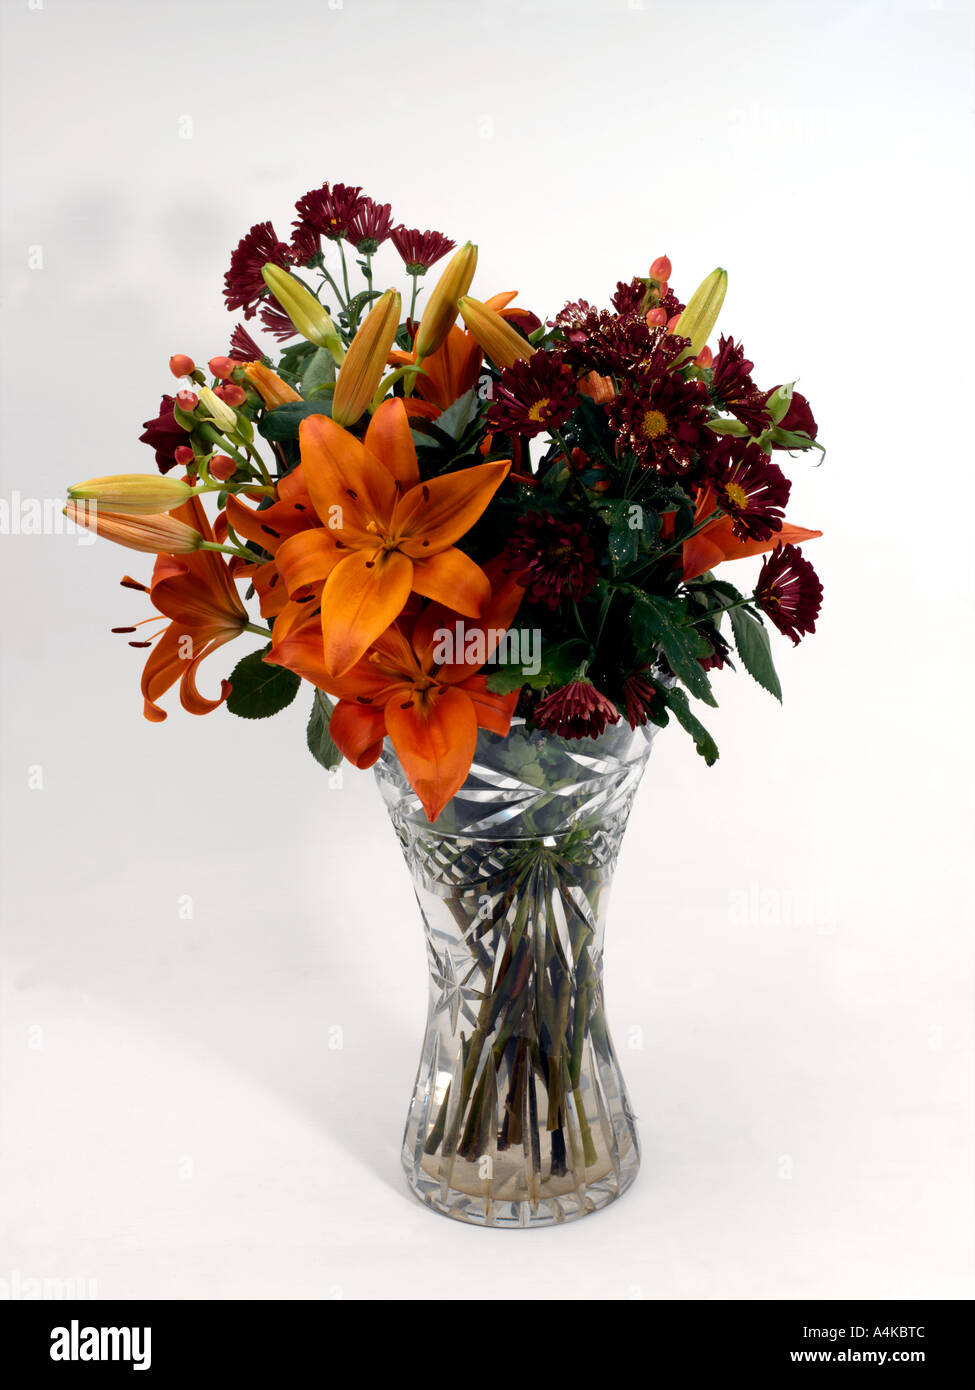 Vase of Flowers Orange Lilies and Purple Daisies with Glitter in     Vase of Flowers Orange Lilies and Purple Daisies with Glitter in Lead  Crystal Vase